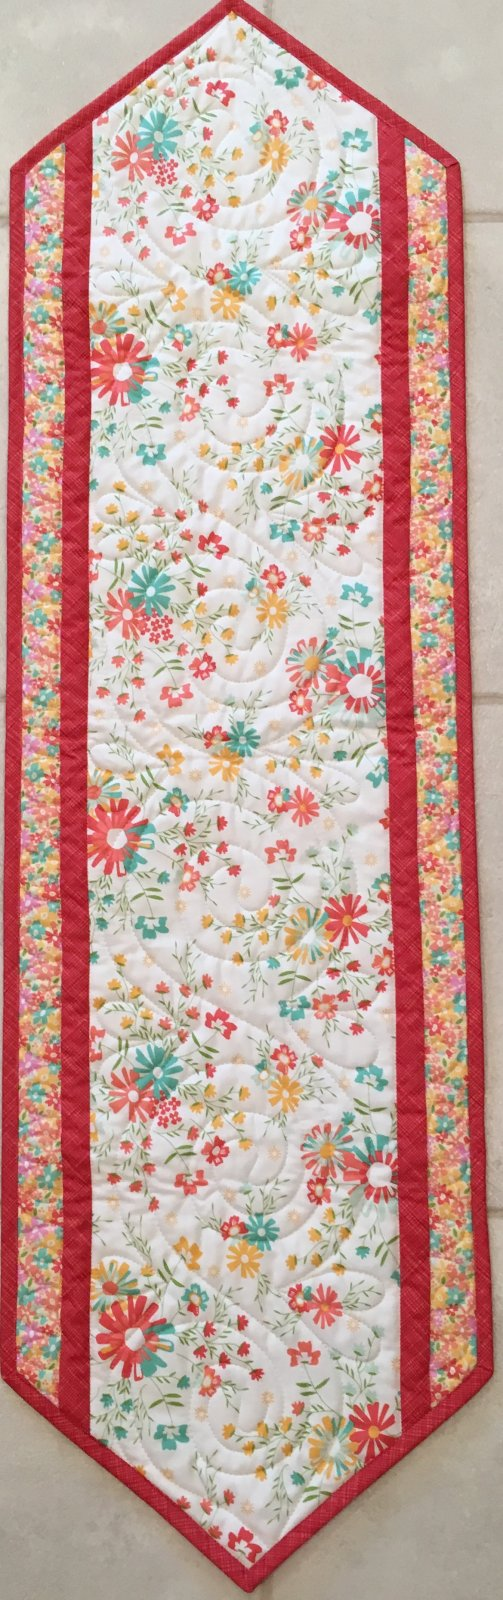 The Big Easy  12 1/2 x 40  Pattern & Backing Included